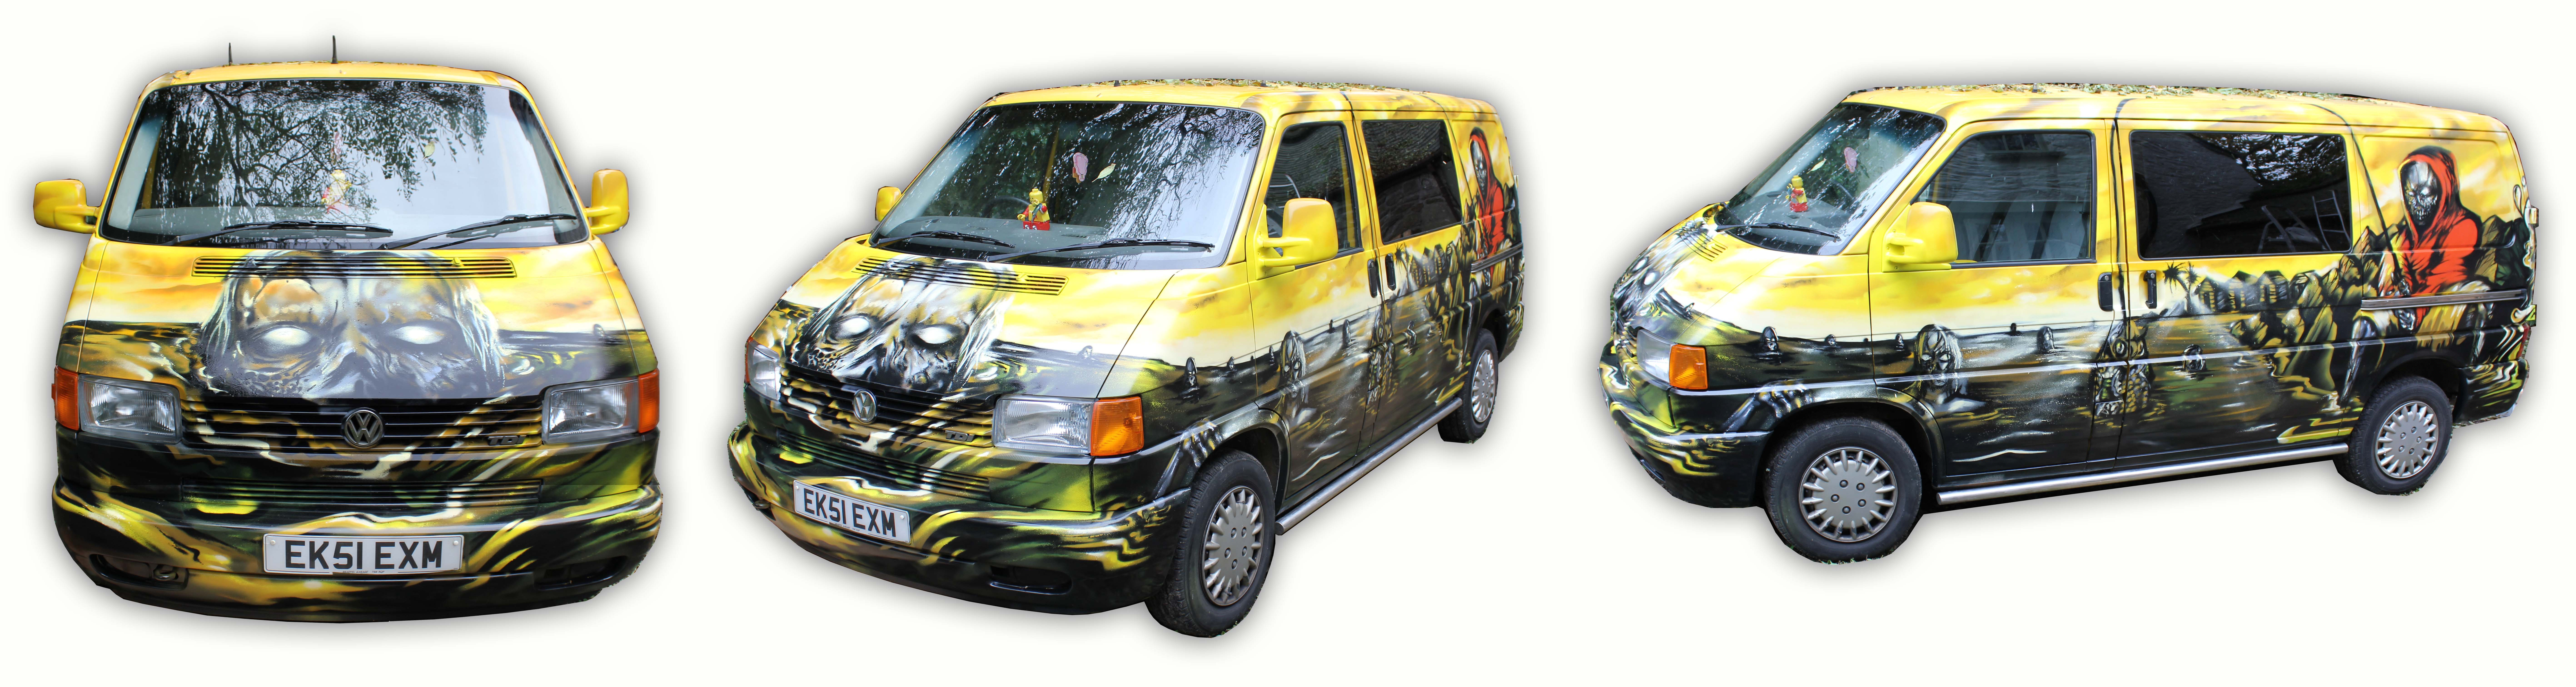 zombie graffiti van front right sketch86